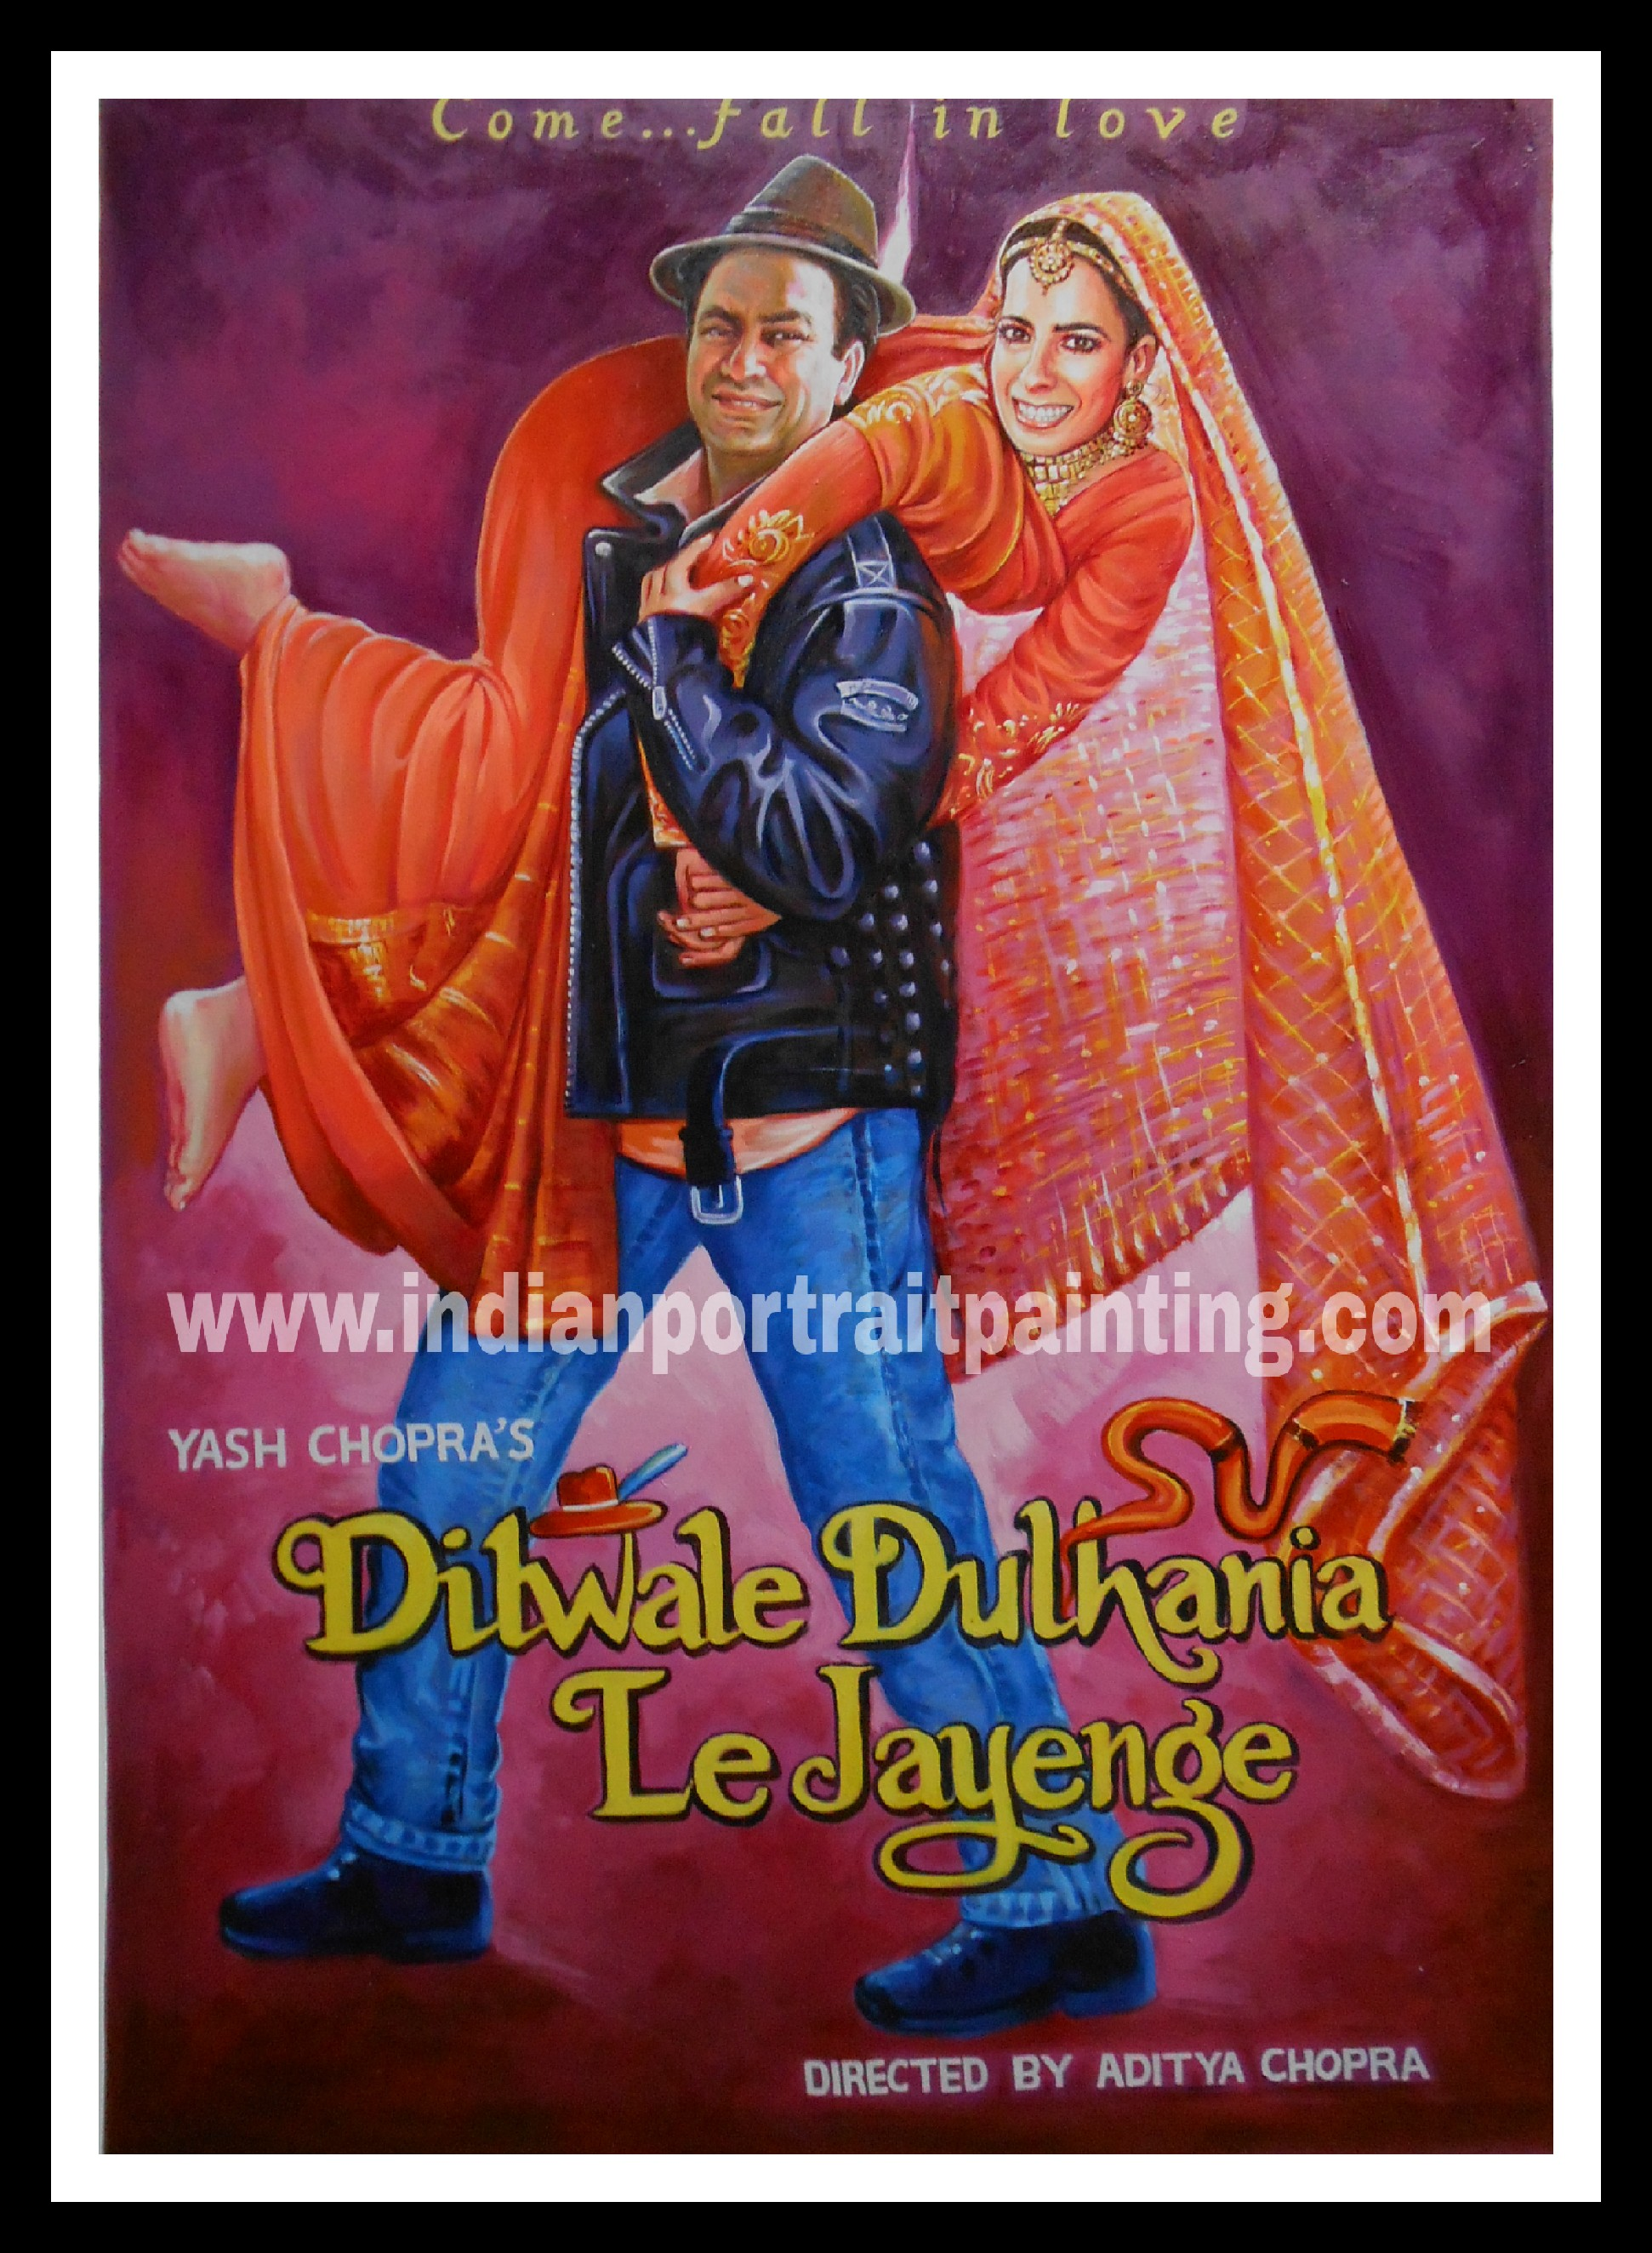 Bollywood themed wedding decor and invitation – Indian Portrait Painting